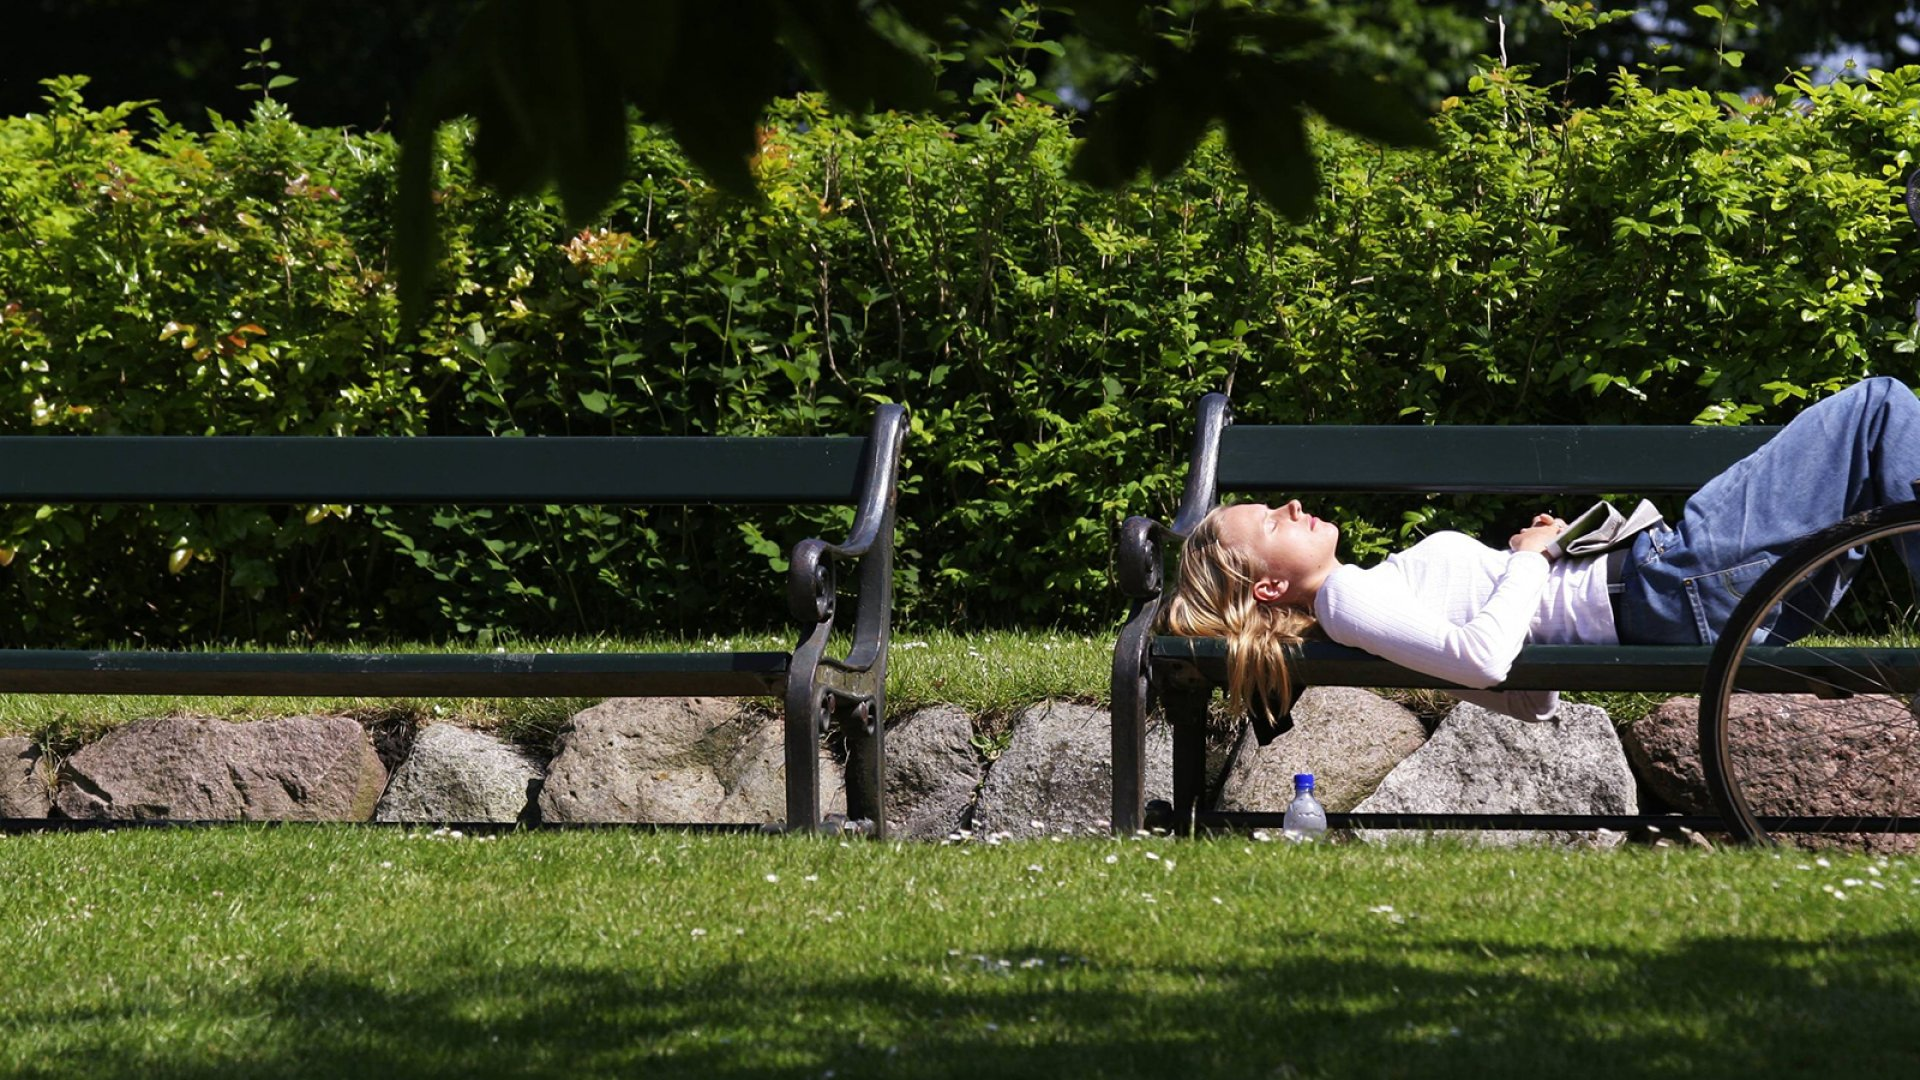 It's Not Just You: Science Says Hot Weather Really Does Make You Lazy